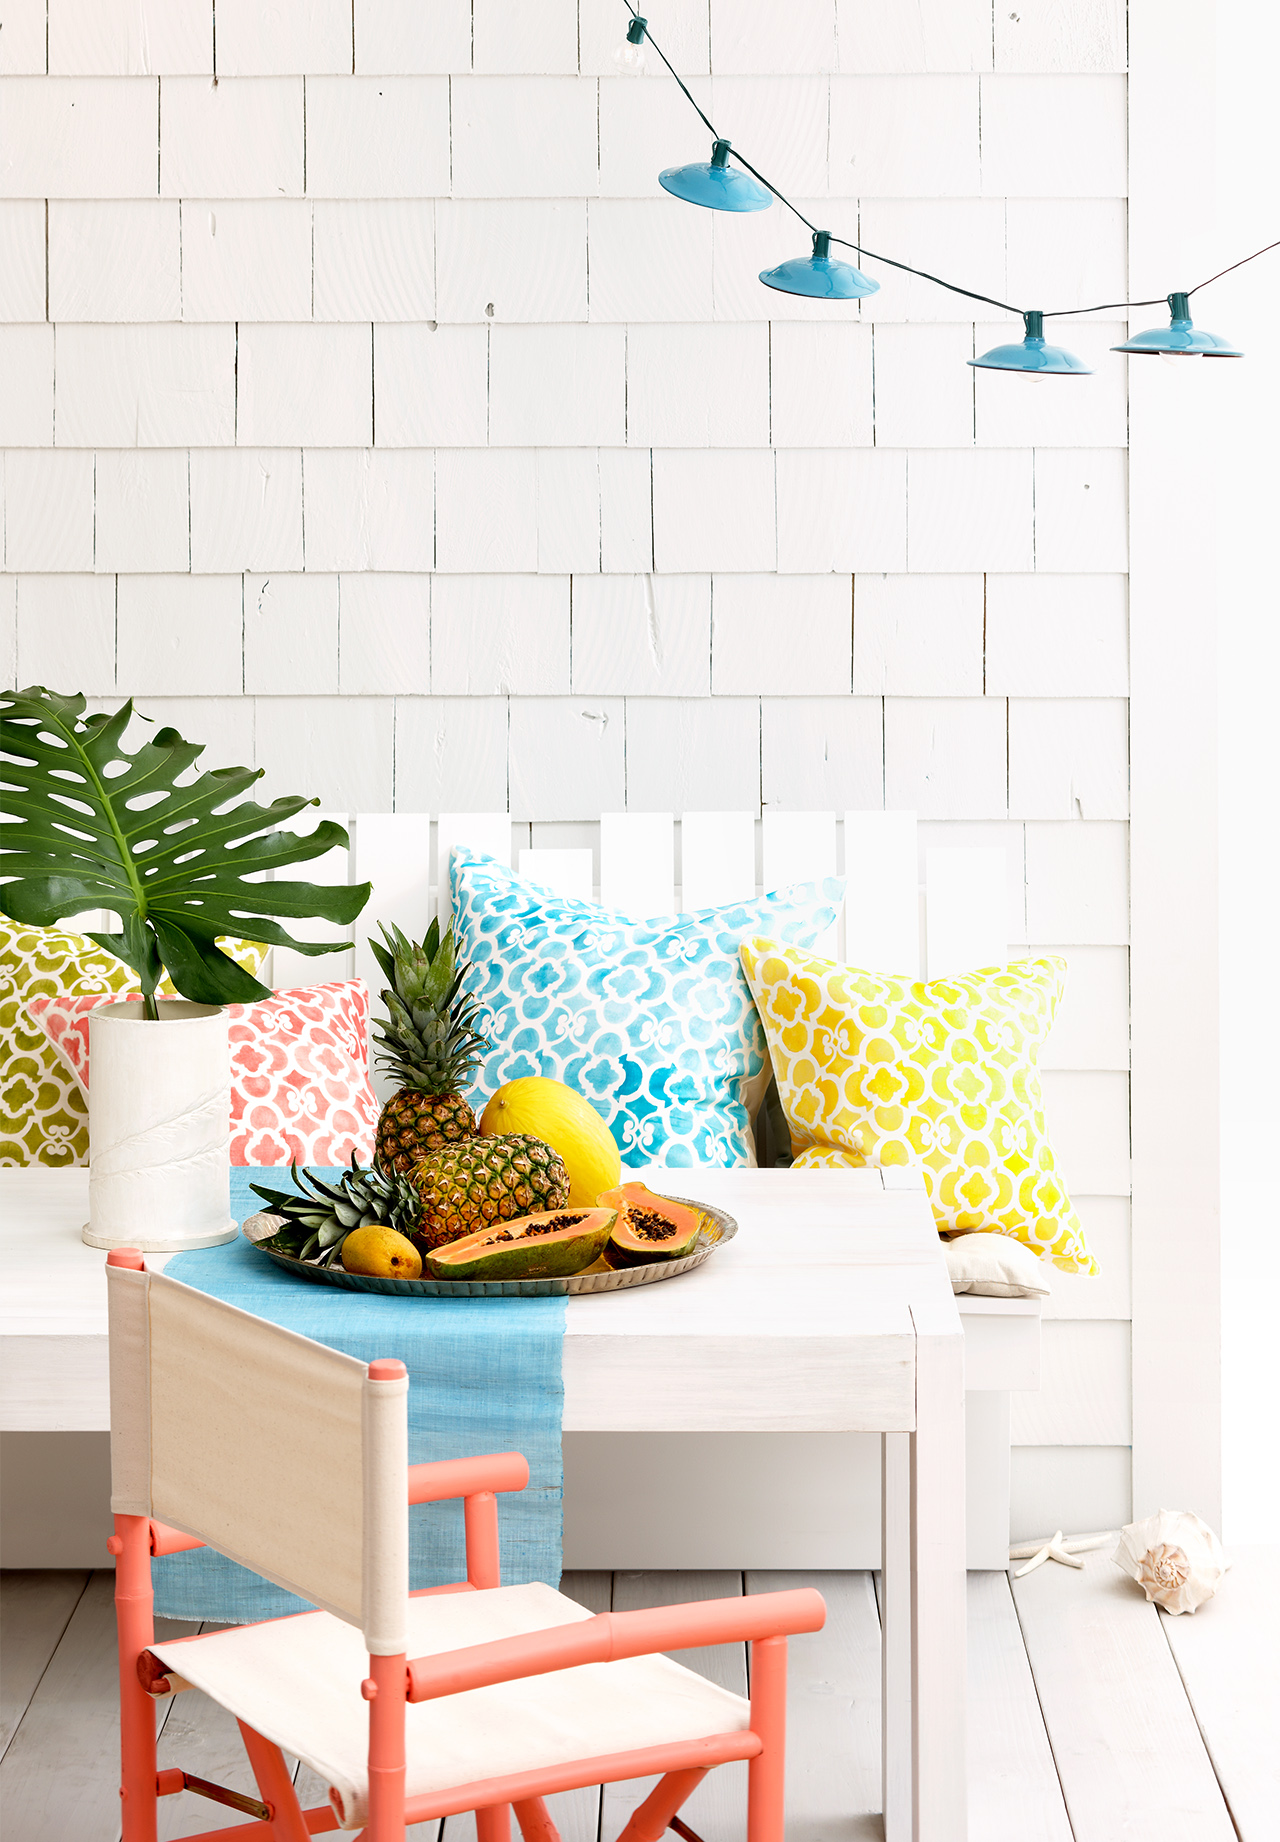 cozy outdoor seating with colorful patterned pillows